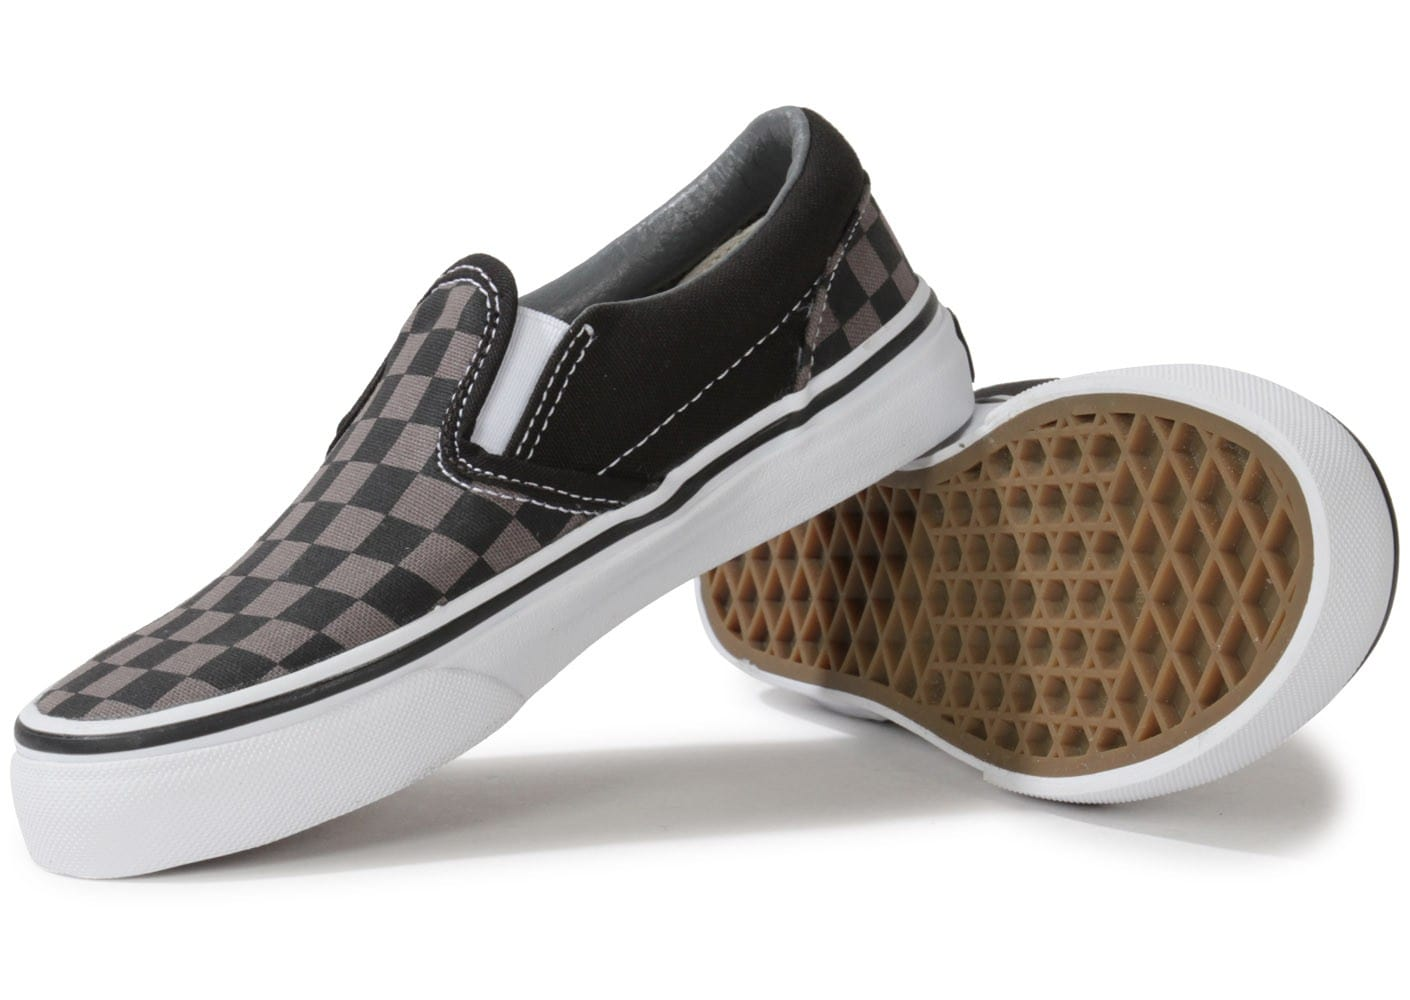 vans classic slip on damier enfant chaussures chaussures chausport. Black Bedroom Furniture Sets. Home Design Ideas